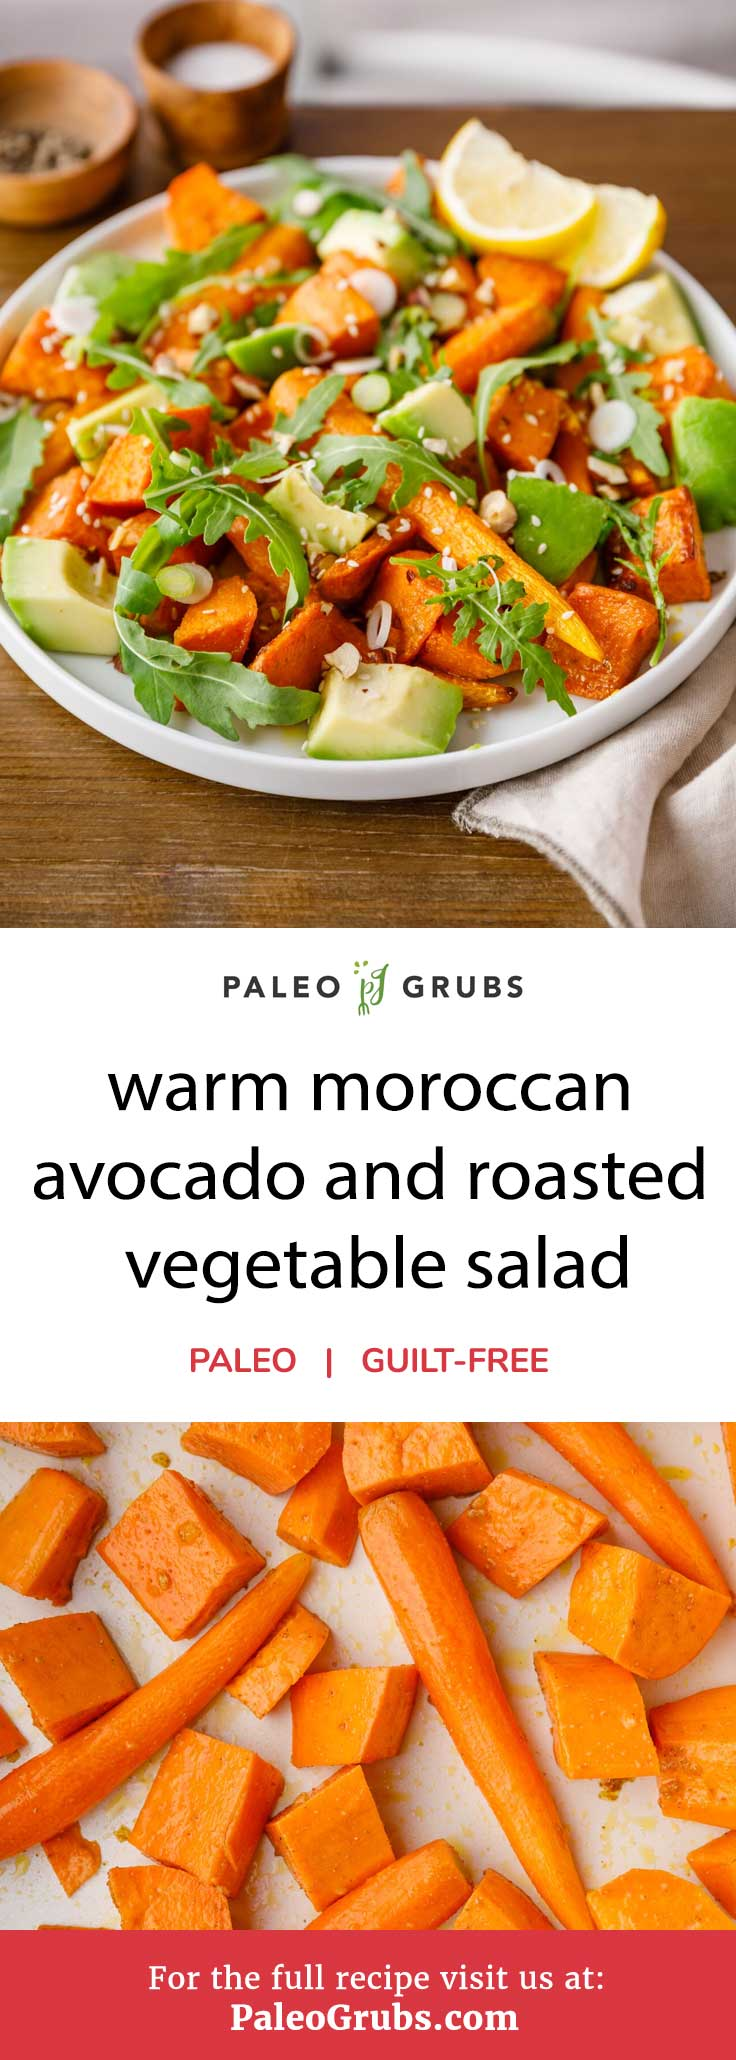 Warm Moroccan Avocado and Roasted Vegetable Salad | Paleo ...